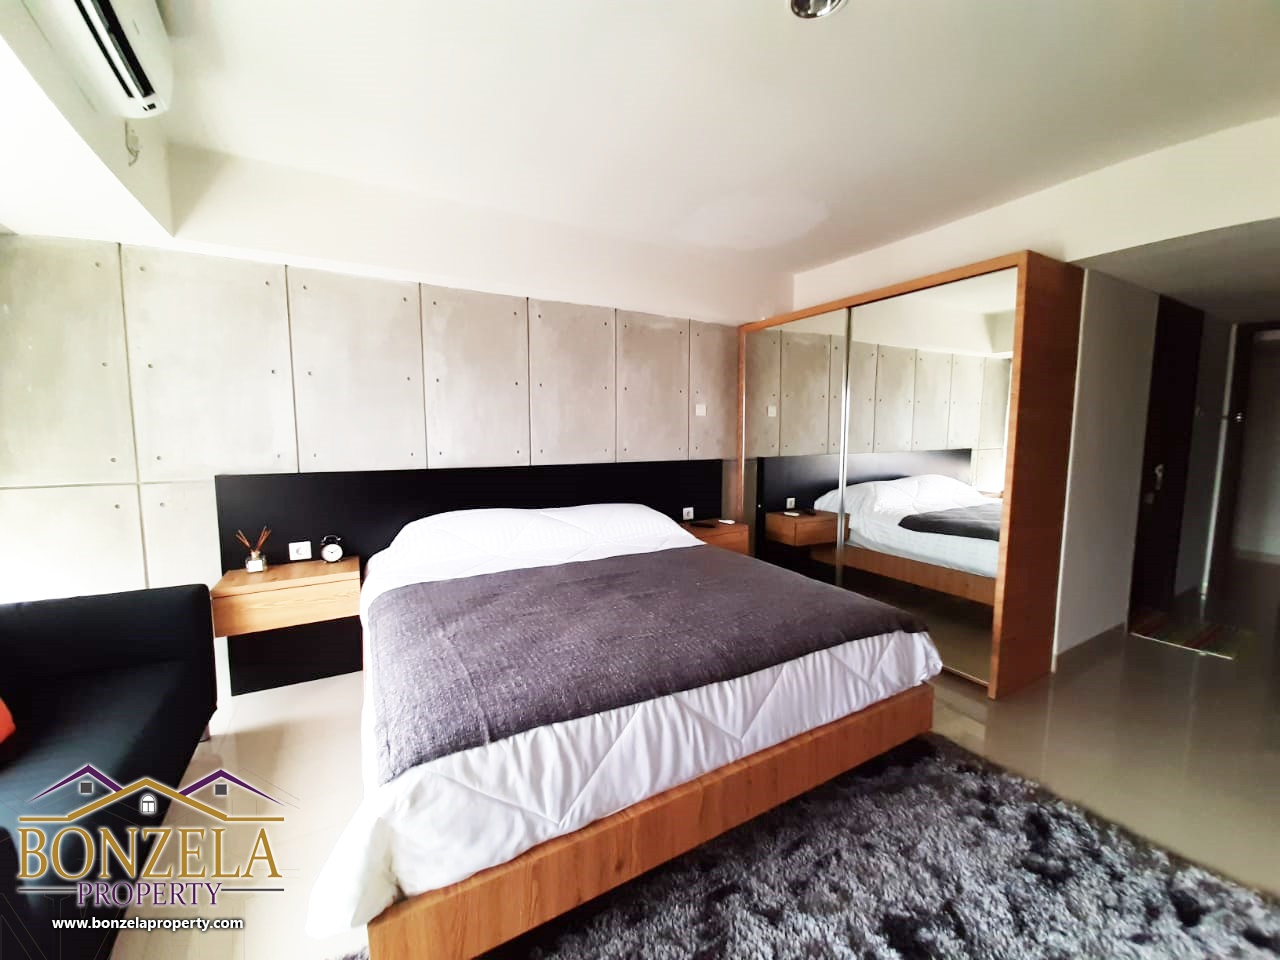 ForSale and Rent di Jakarta Timur Apartement The H Residence